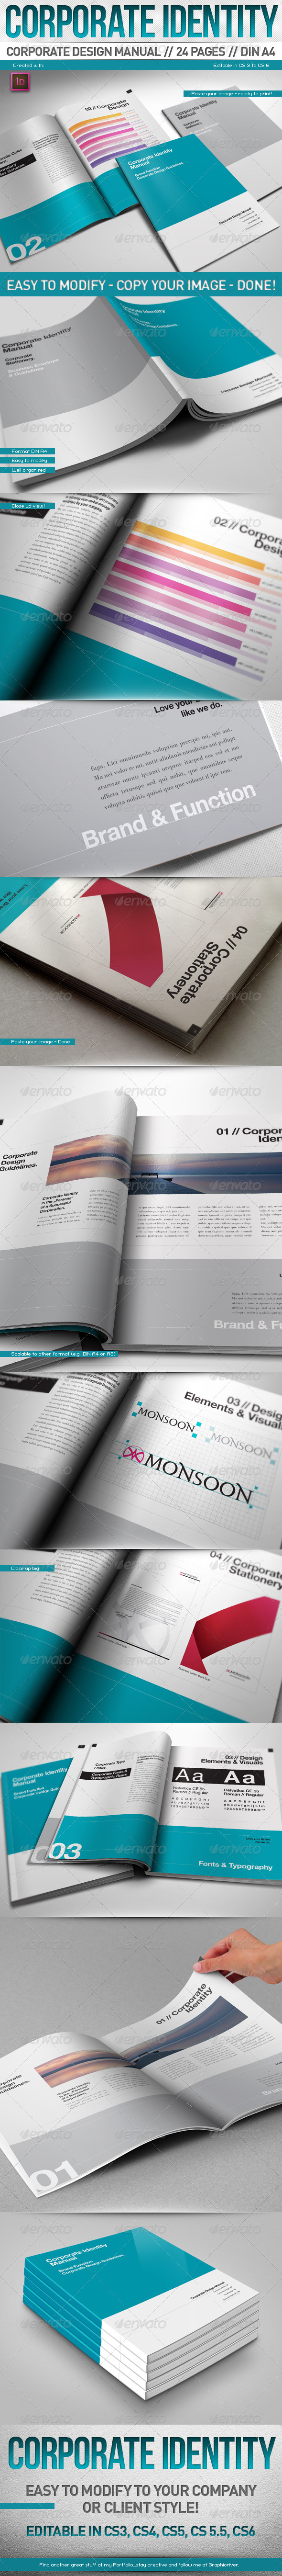 Corporate Design Manual Guide DIN A4 24 Pages